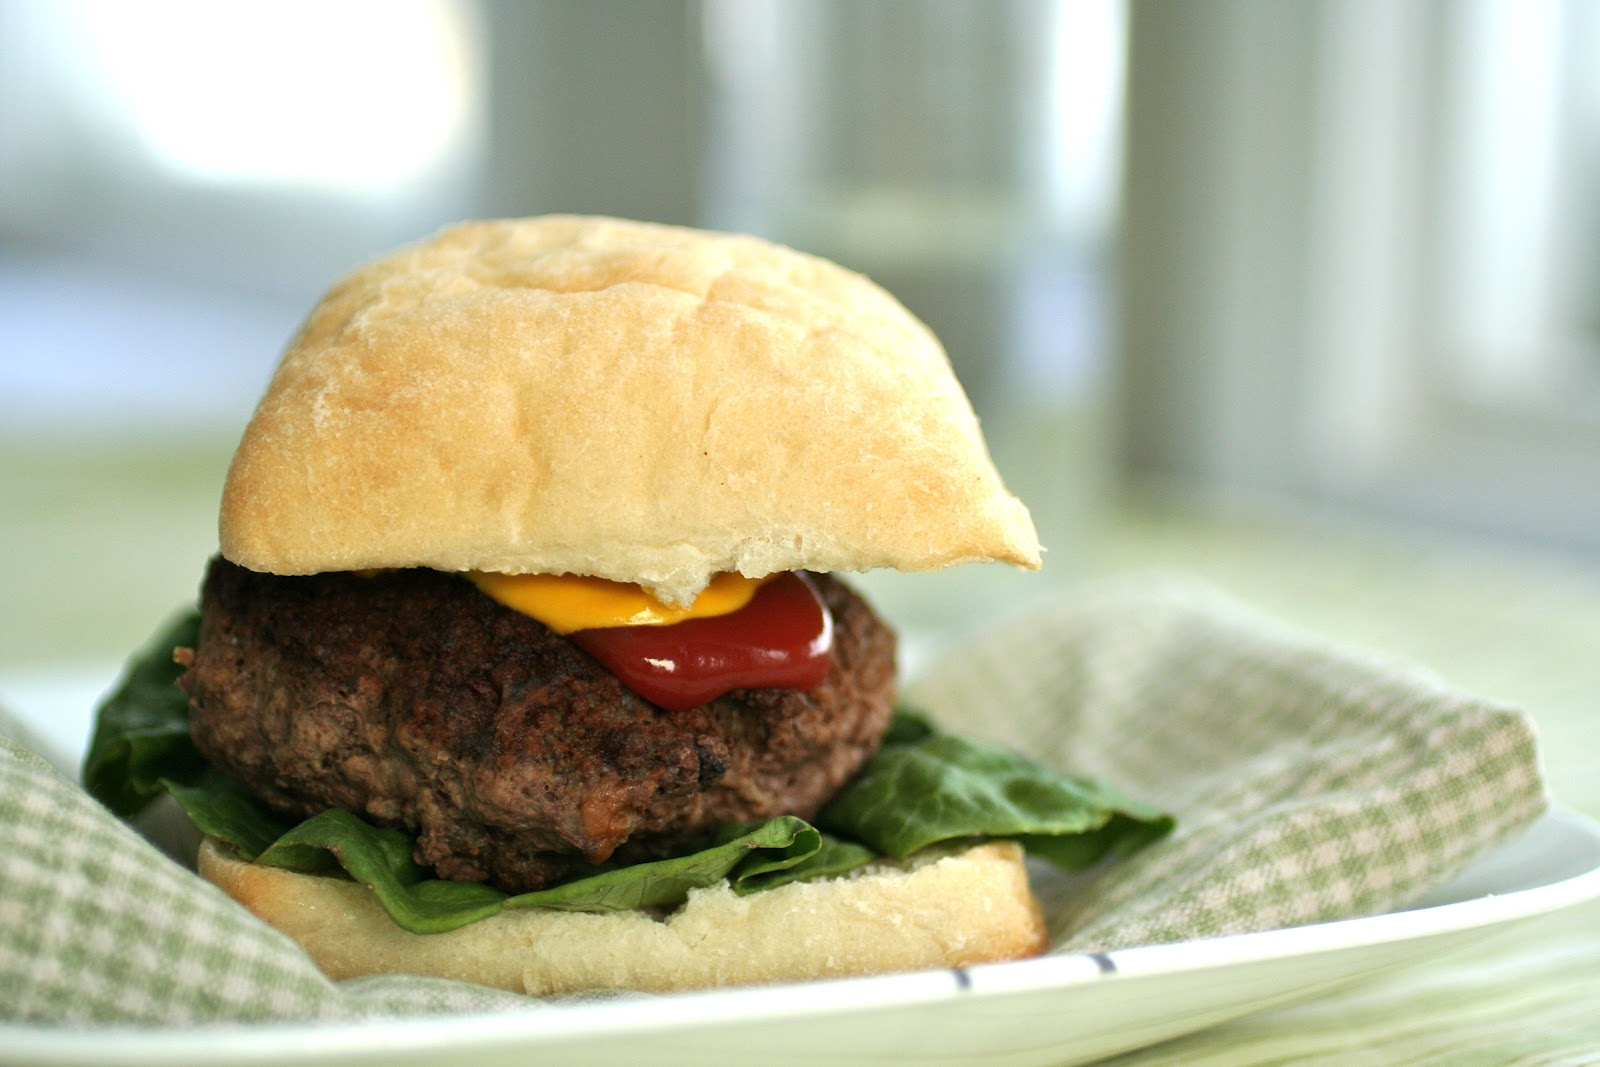 Meal Planning 101: Smoked Cheddar Stuffed Burgers